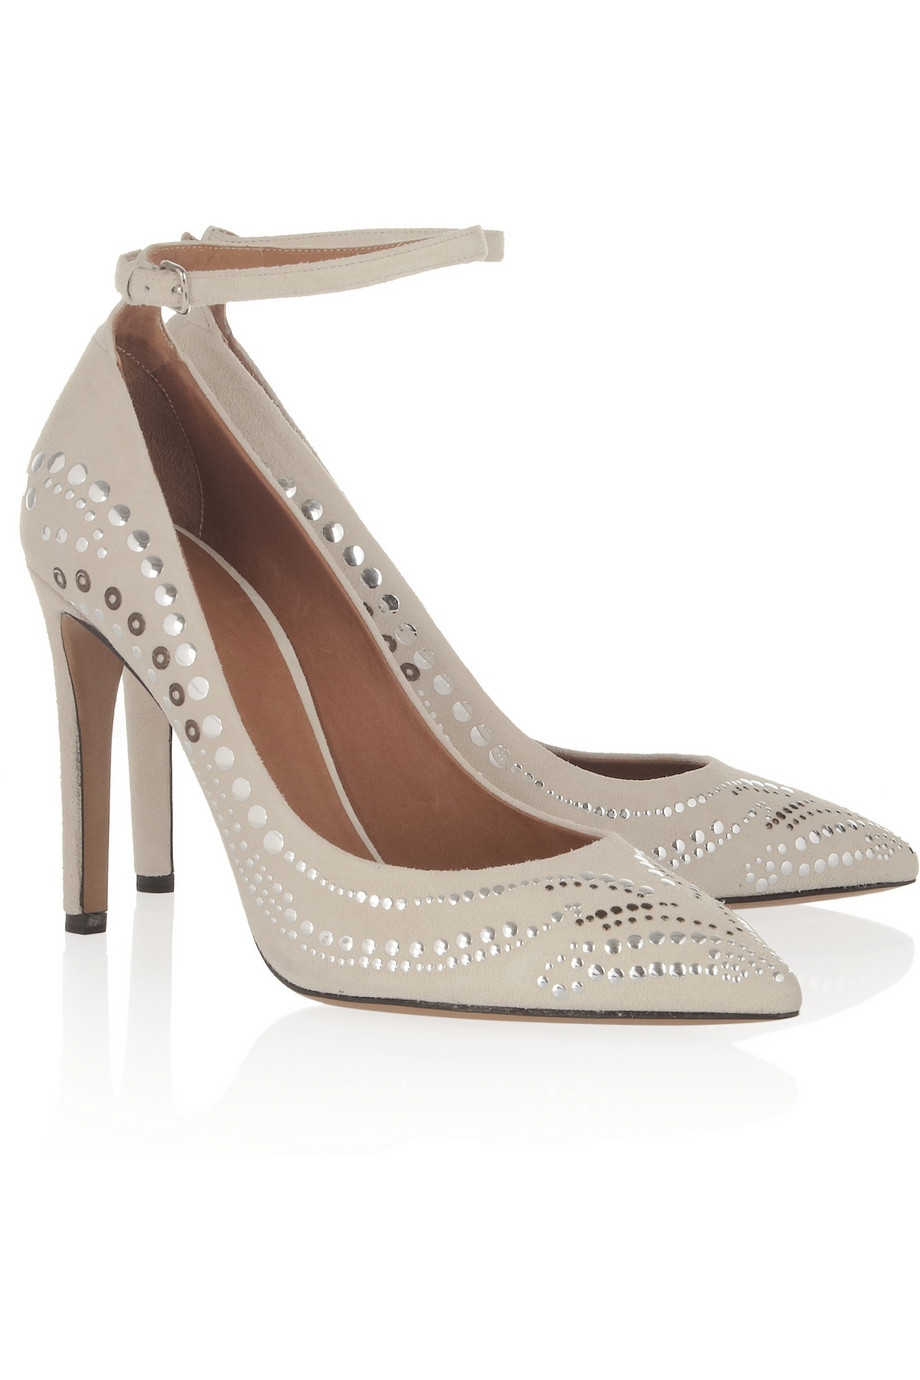 90f55d0602 Isabel Marant Stanley Studded Suede Pumps in White - Lyst